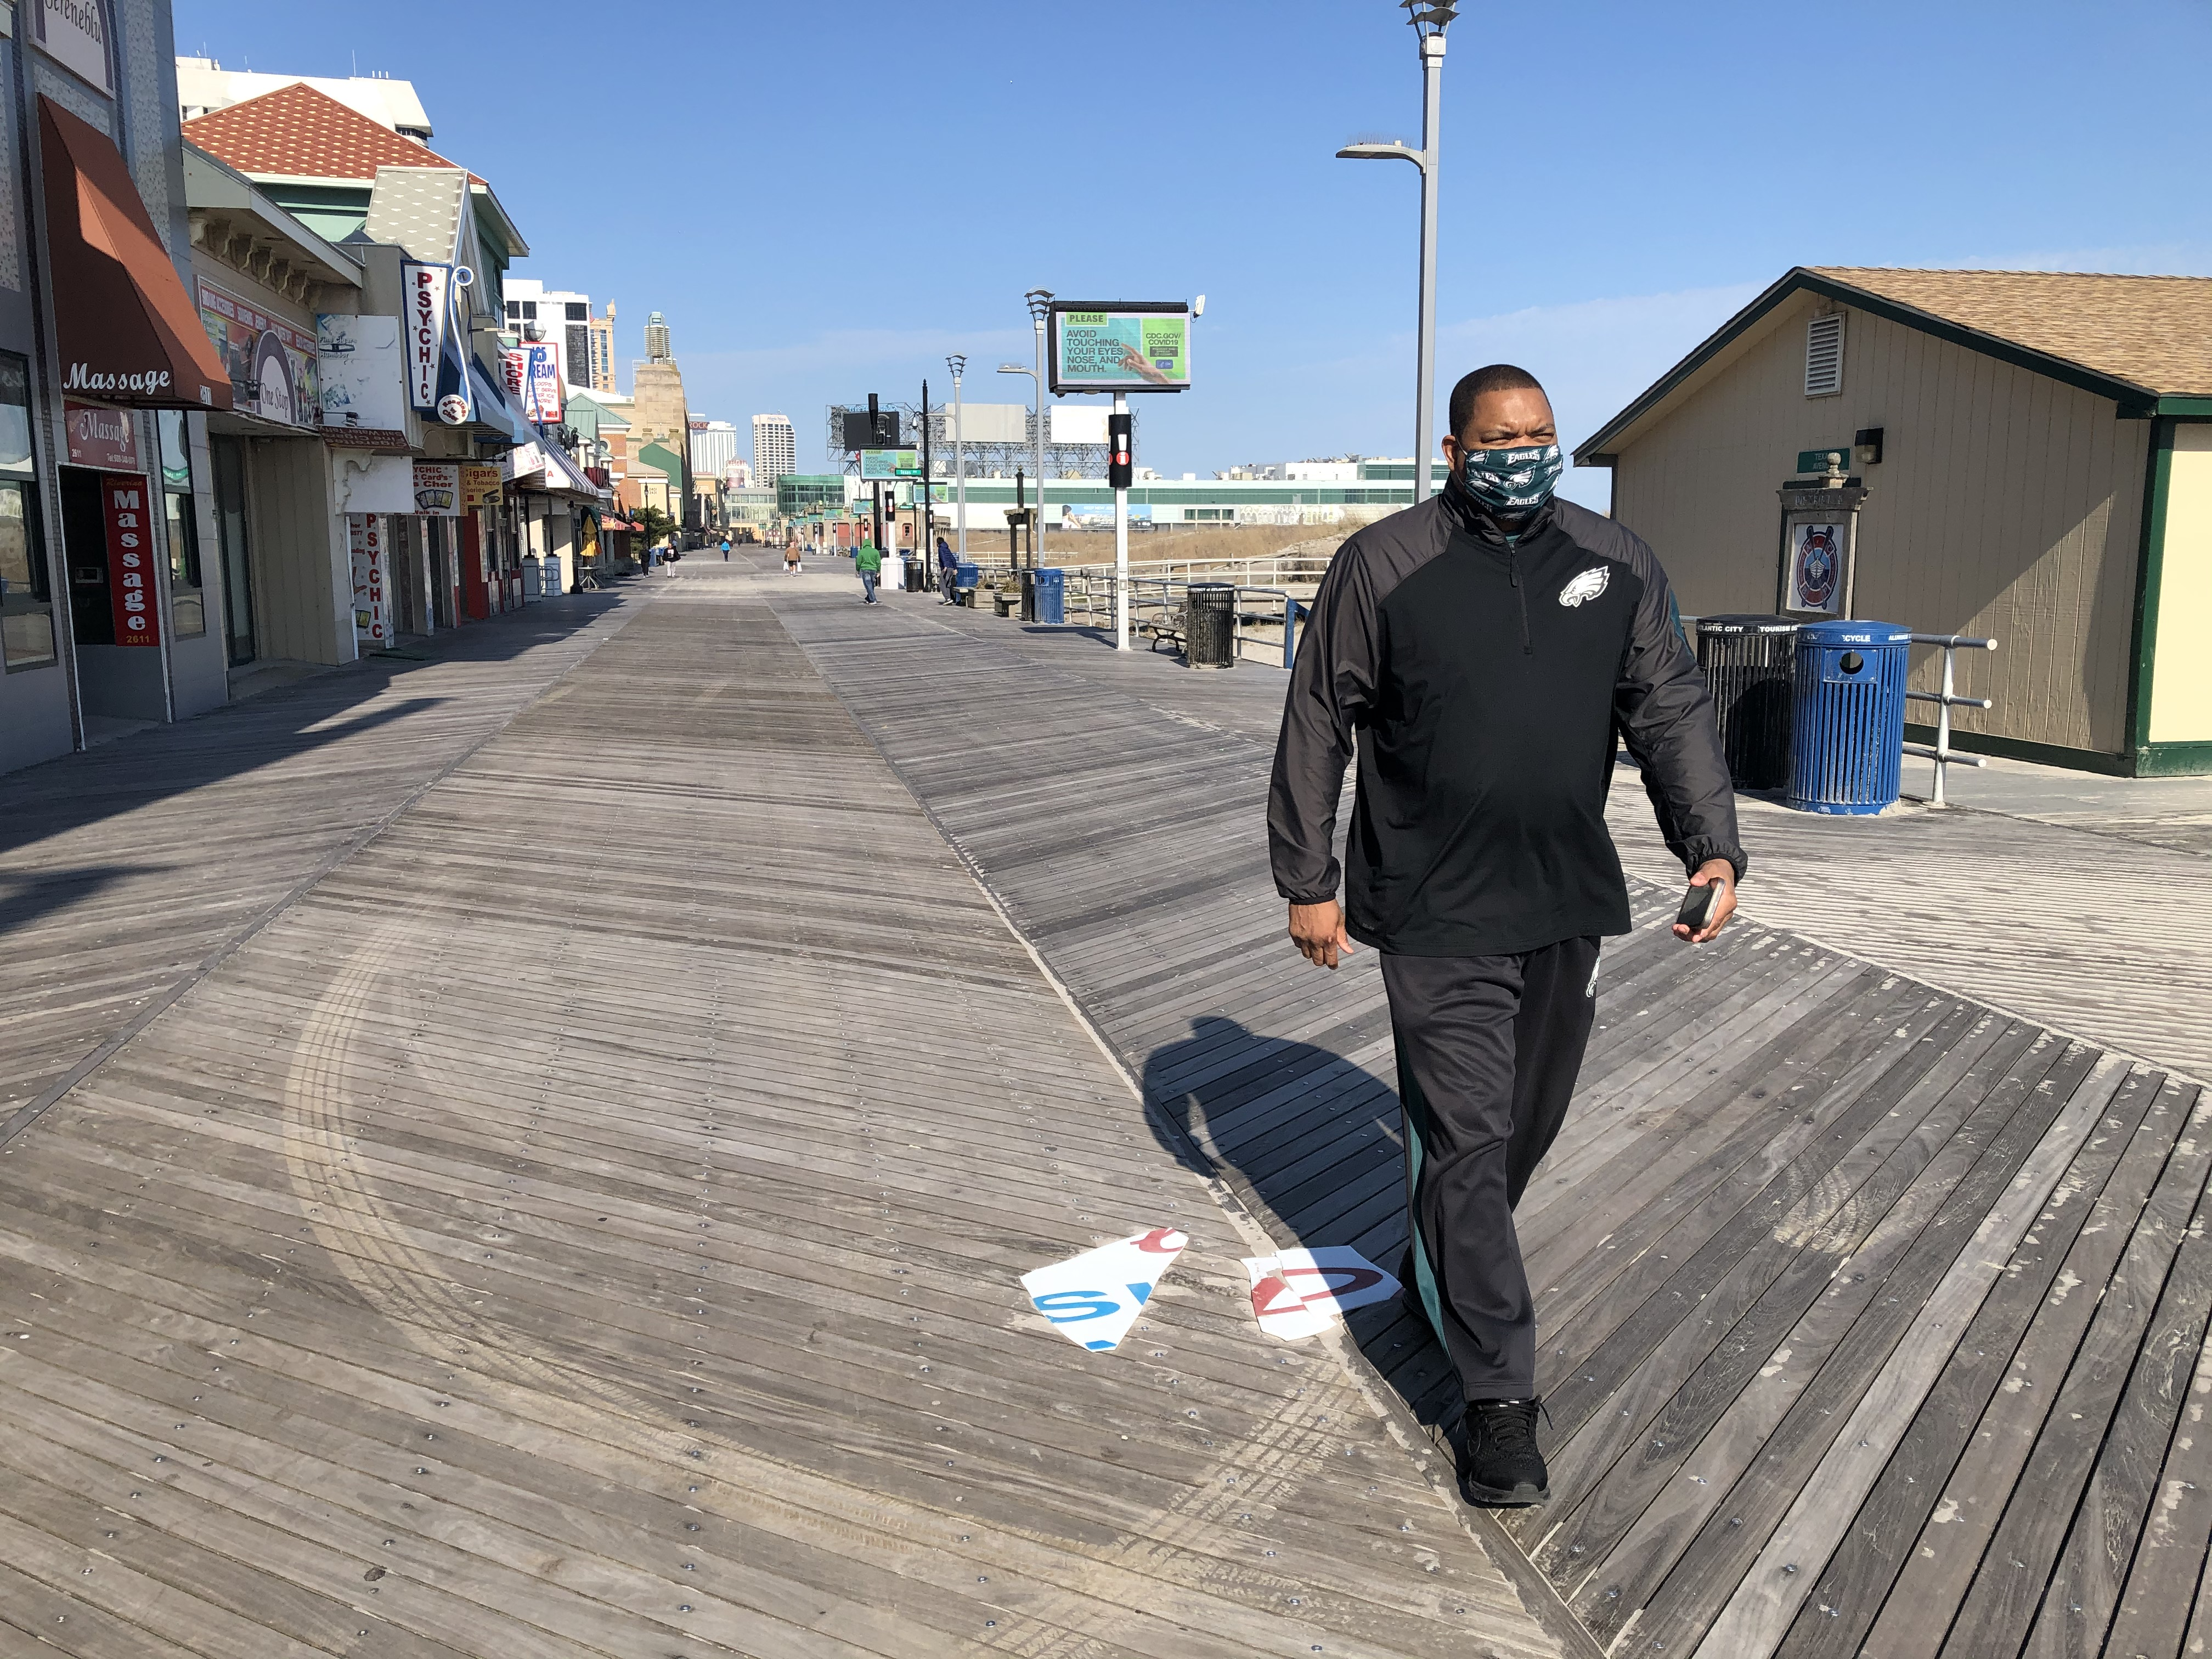 Atlantic City boardwalk remains open, and the mayor, council say ...